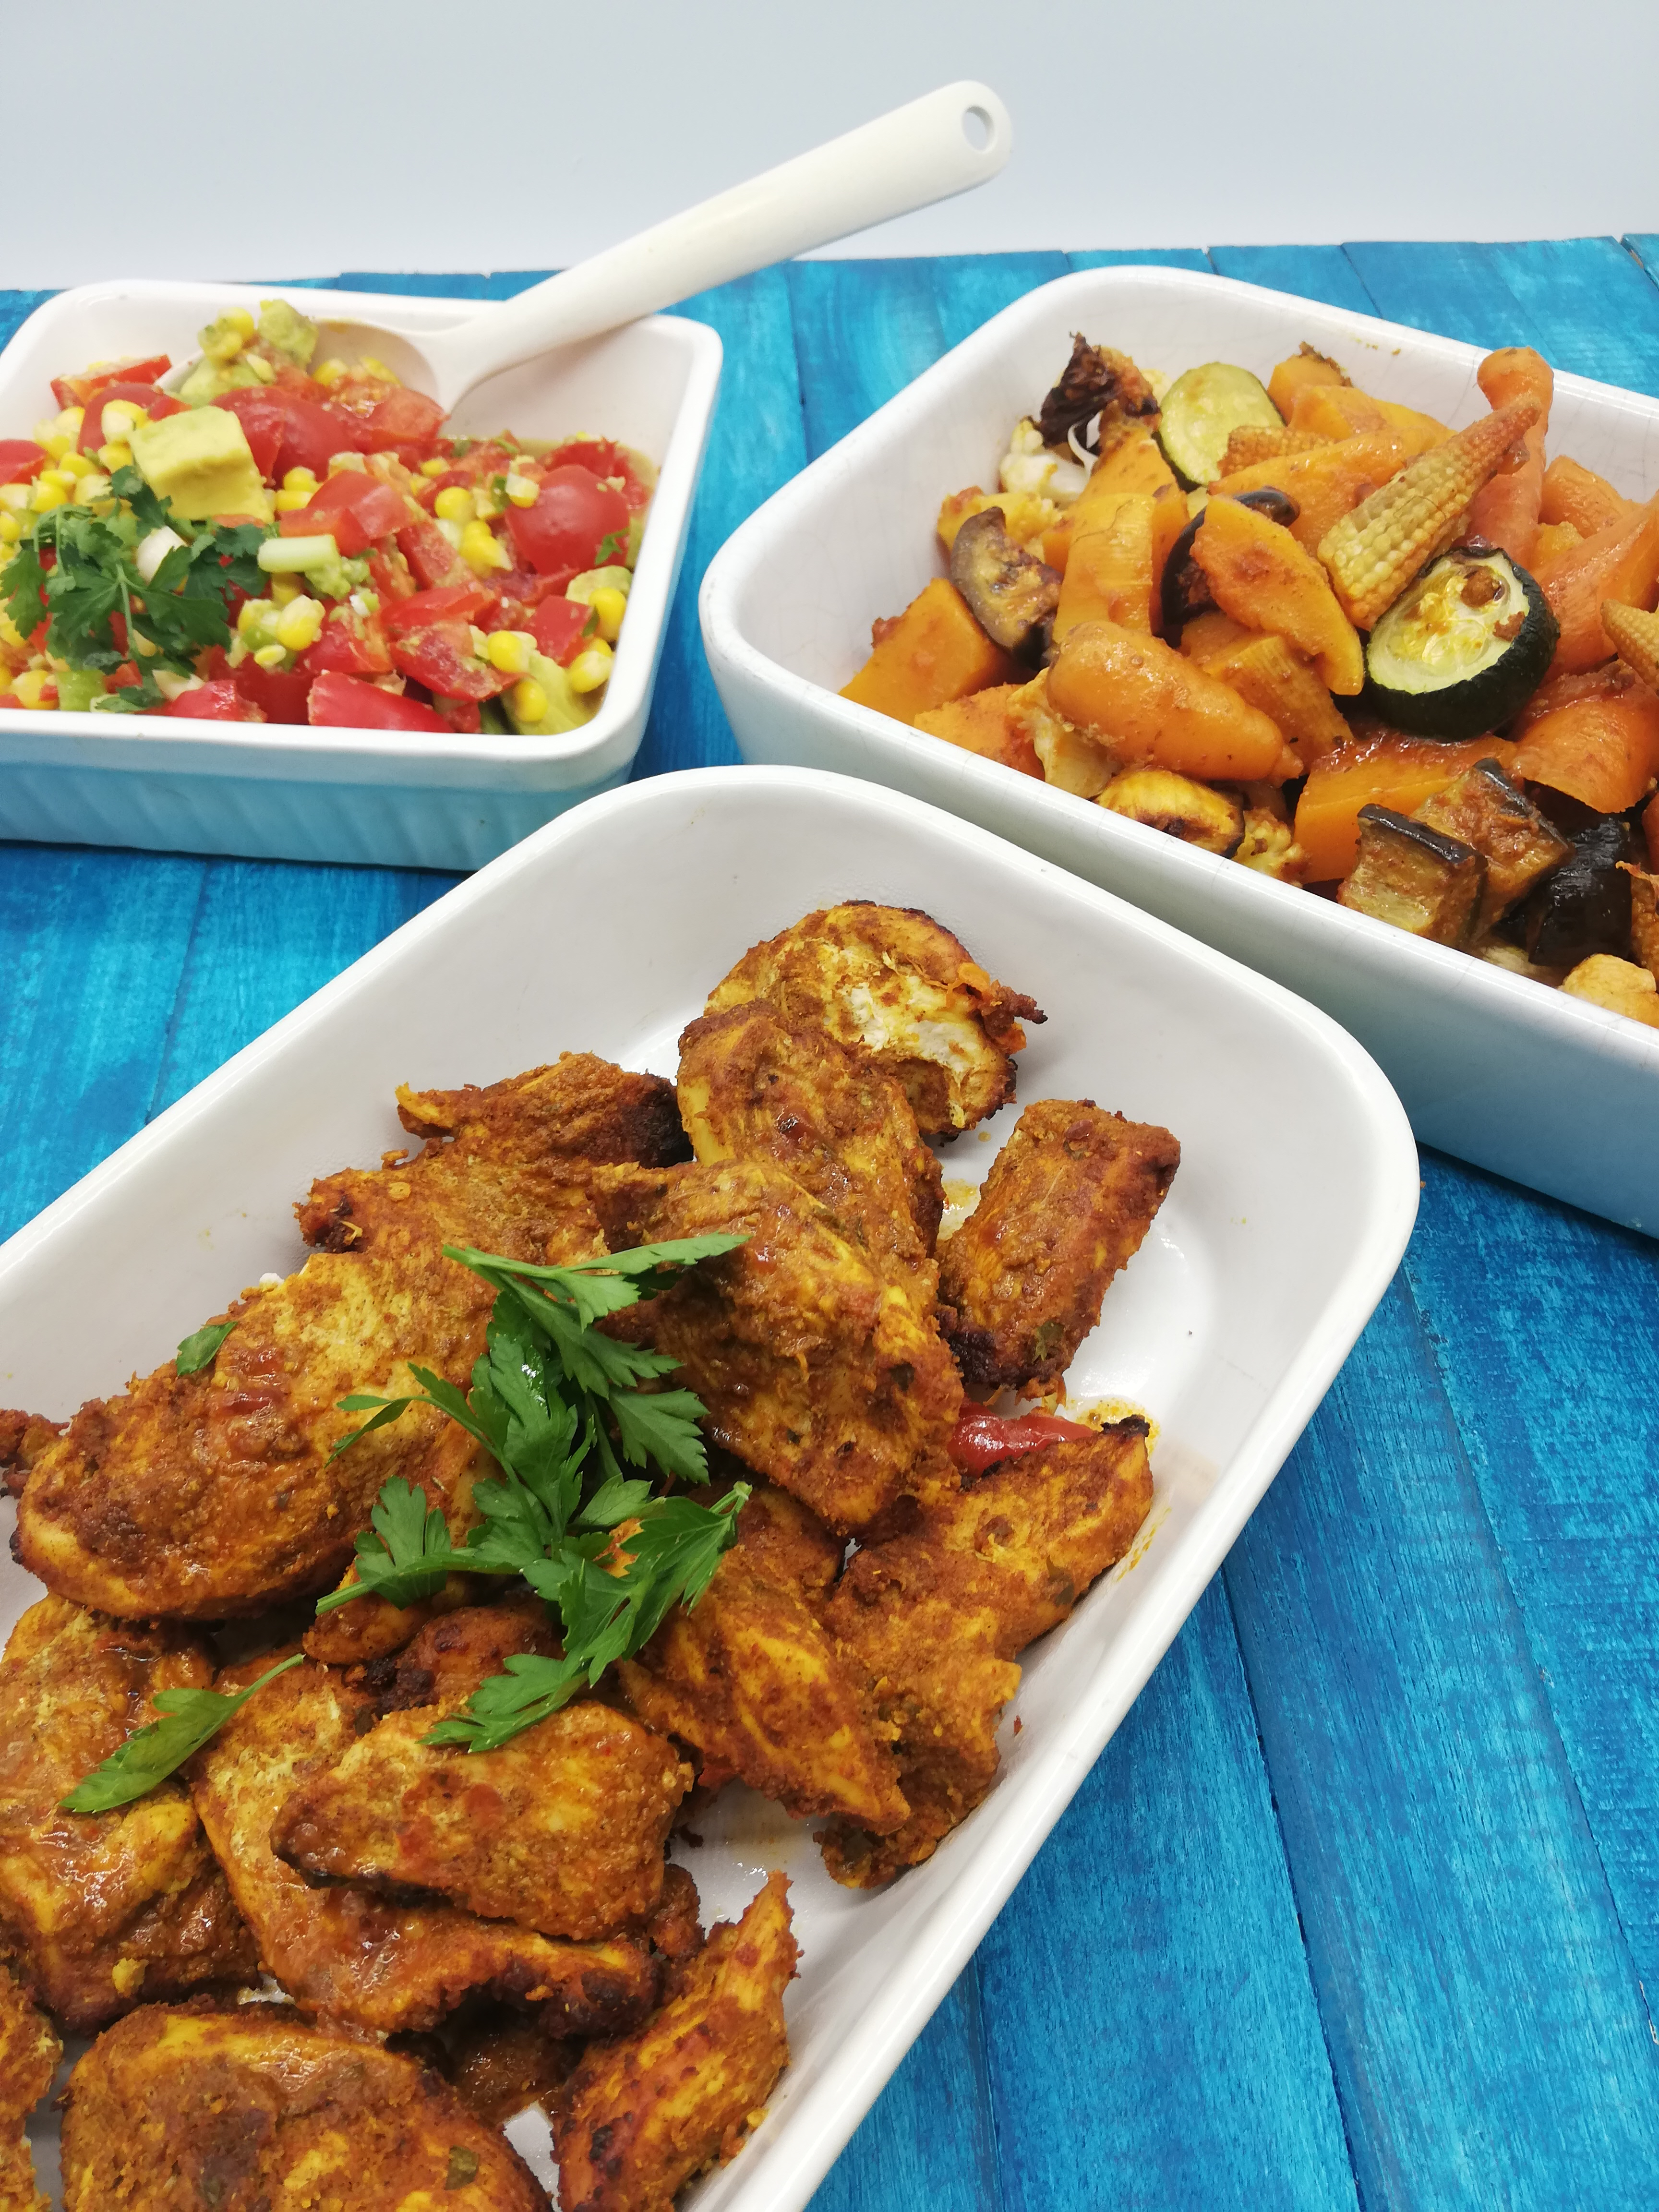 Shawarma Chicken and Vegetables